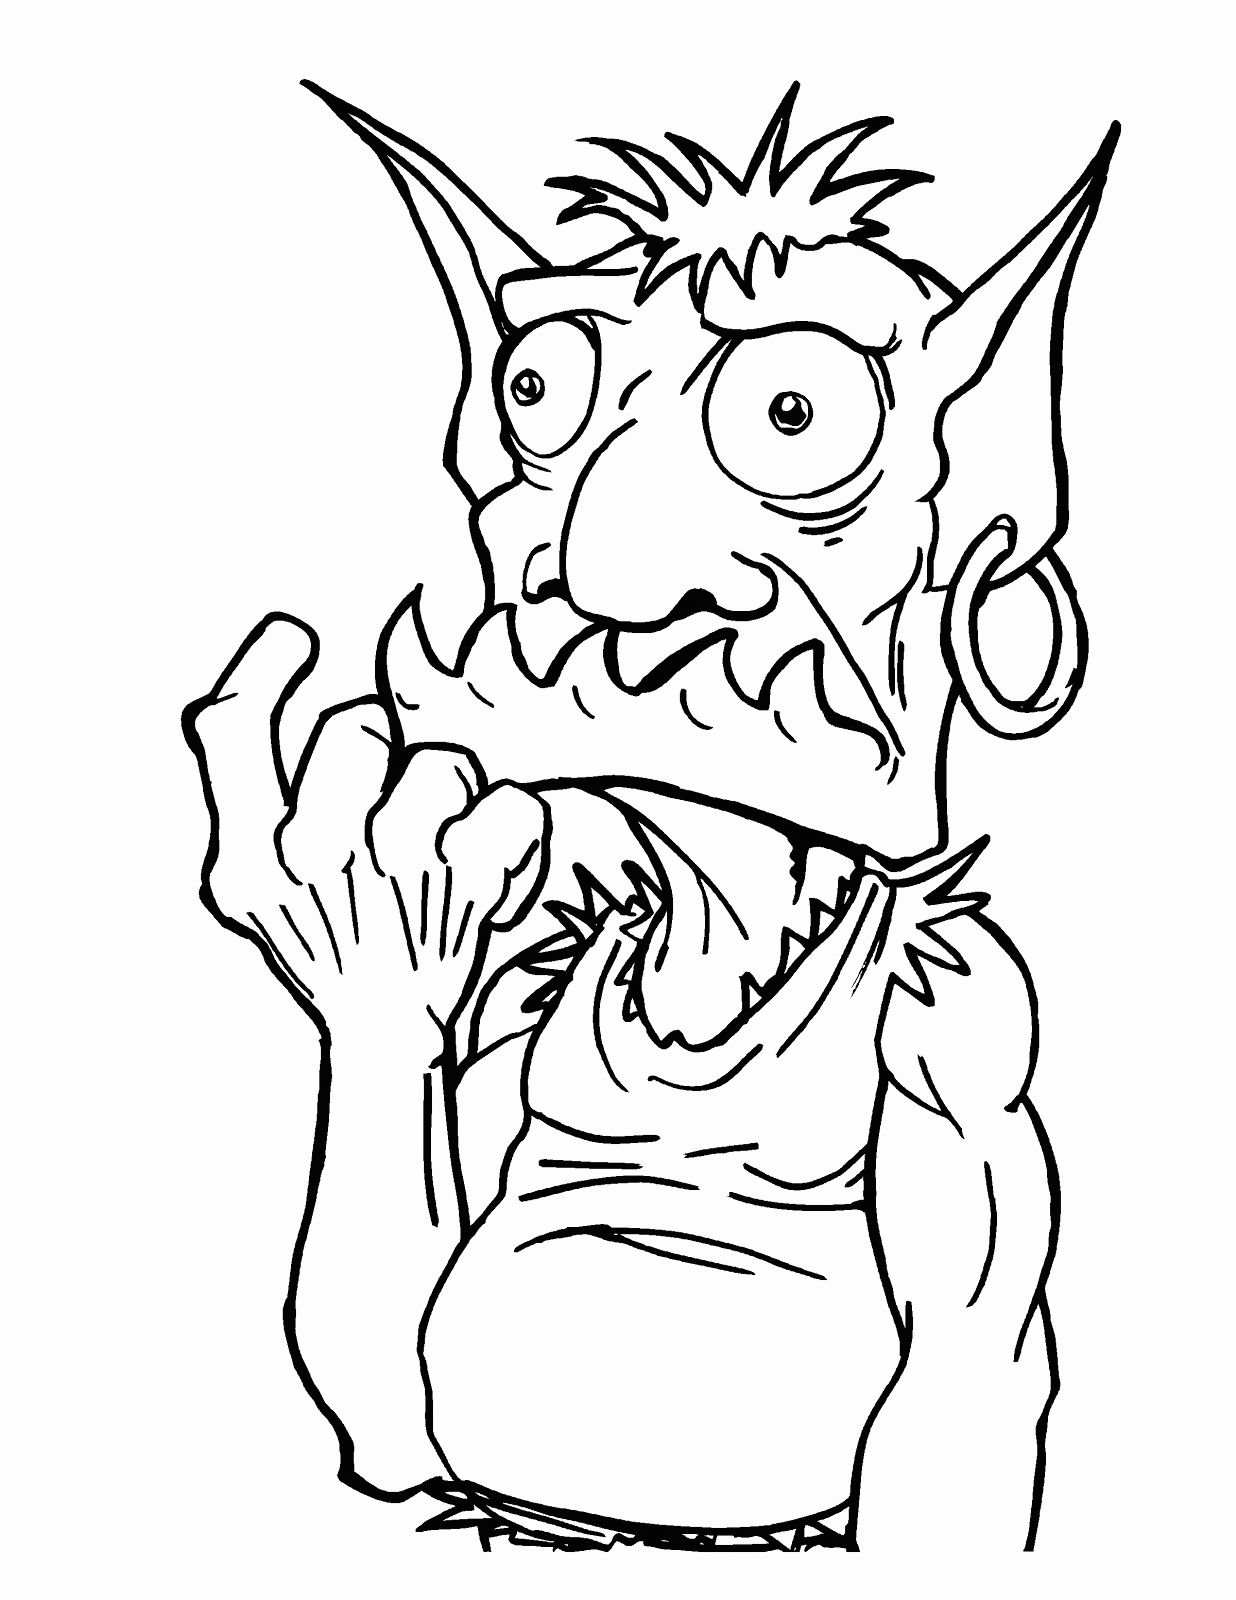 Goblin Coloring Pages Best Coloring Pages For Kids Coloring Pages Detailed Coloring Pages Coloring Pages For Kids